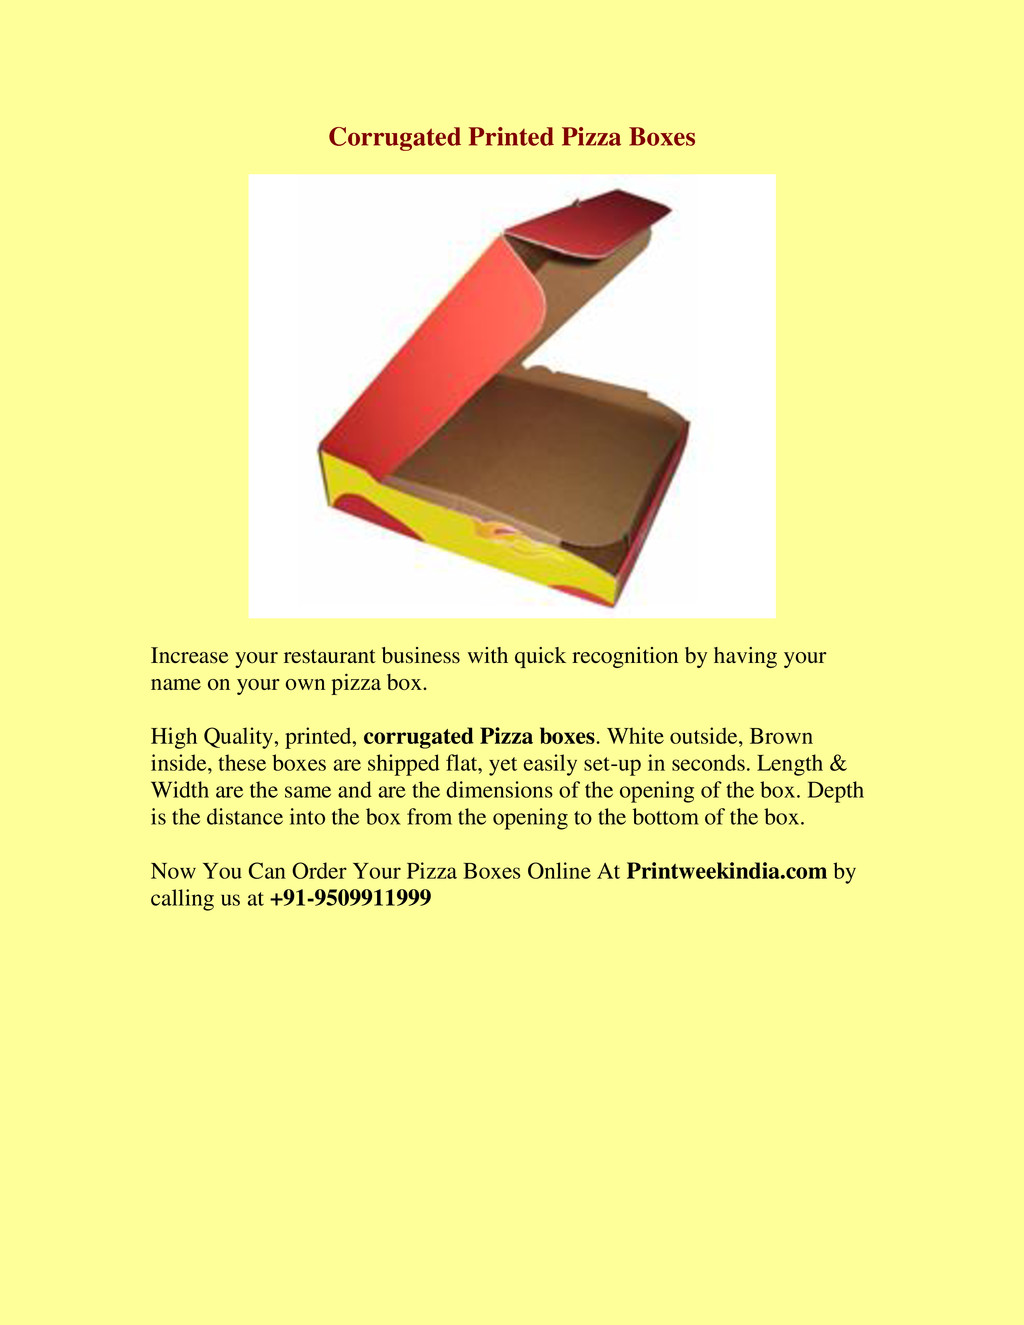 Corrugated Printed Pizza Boxes Increase your re...